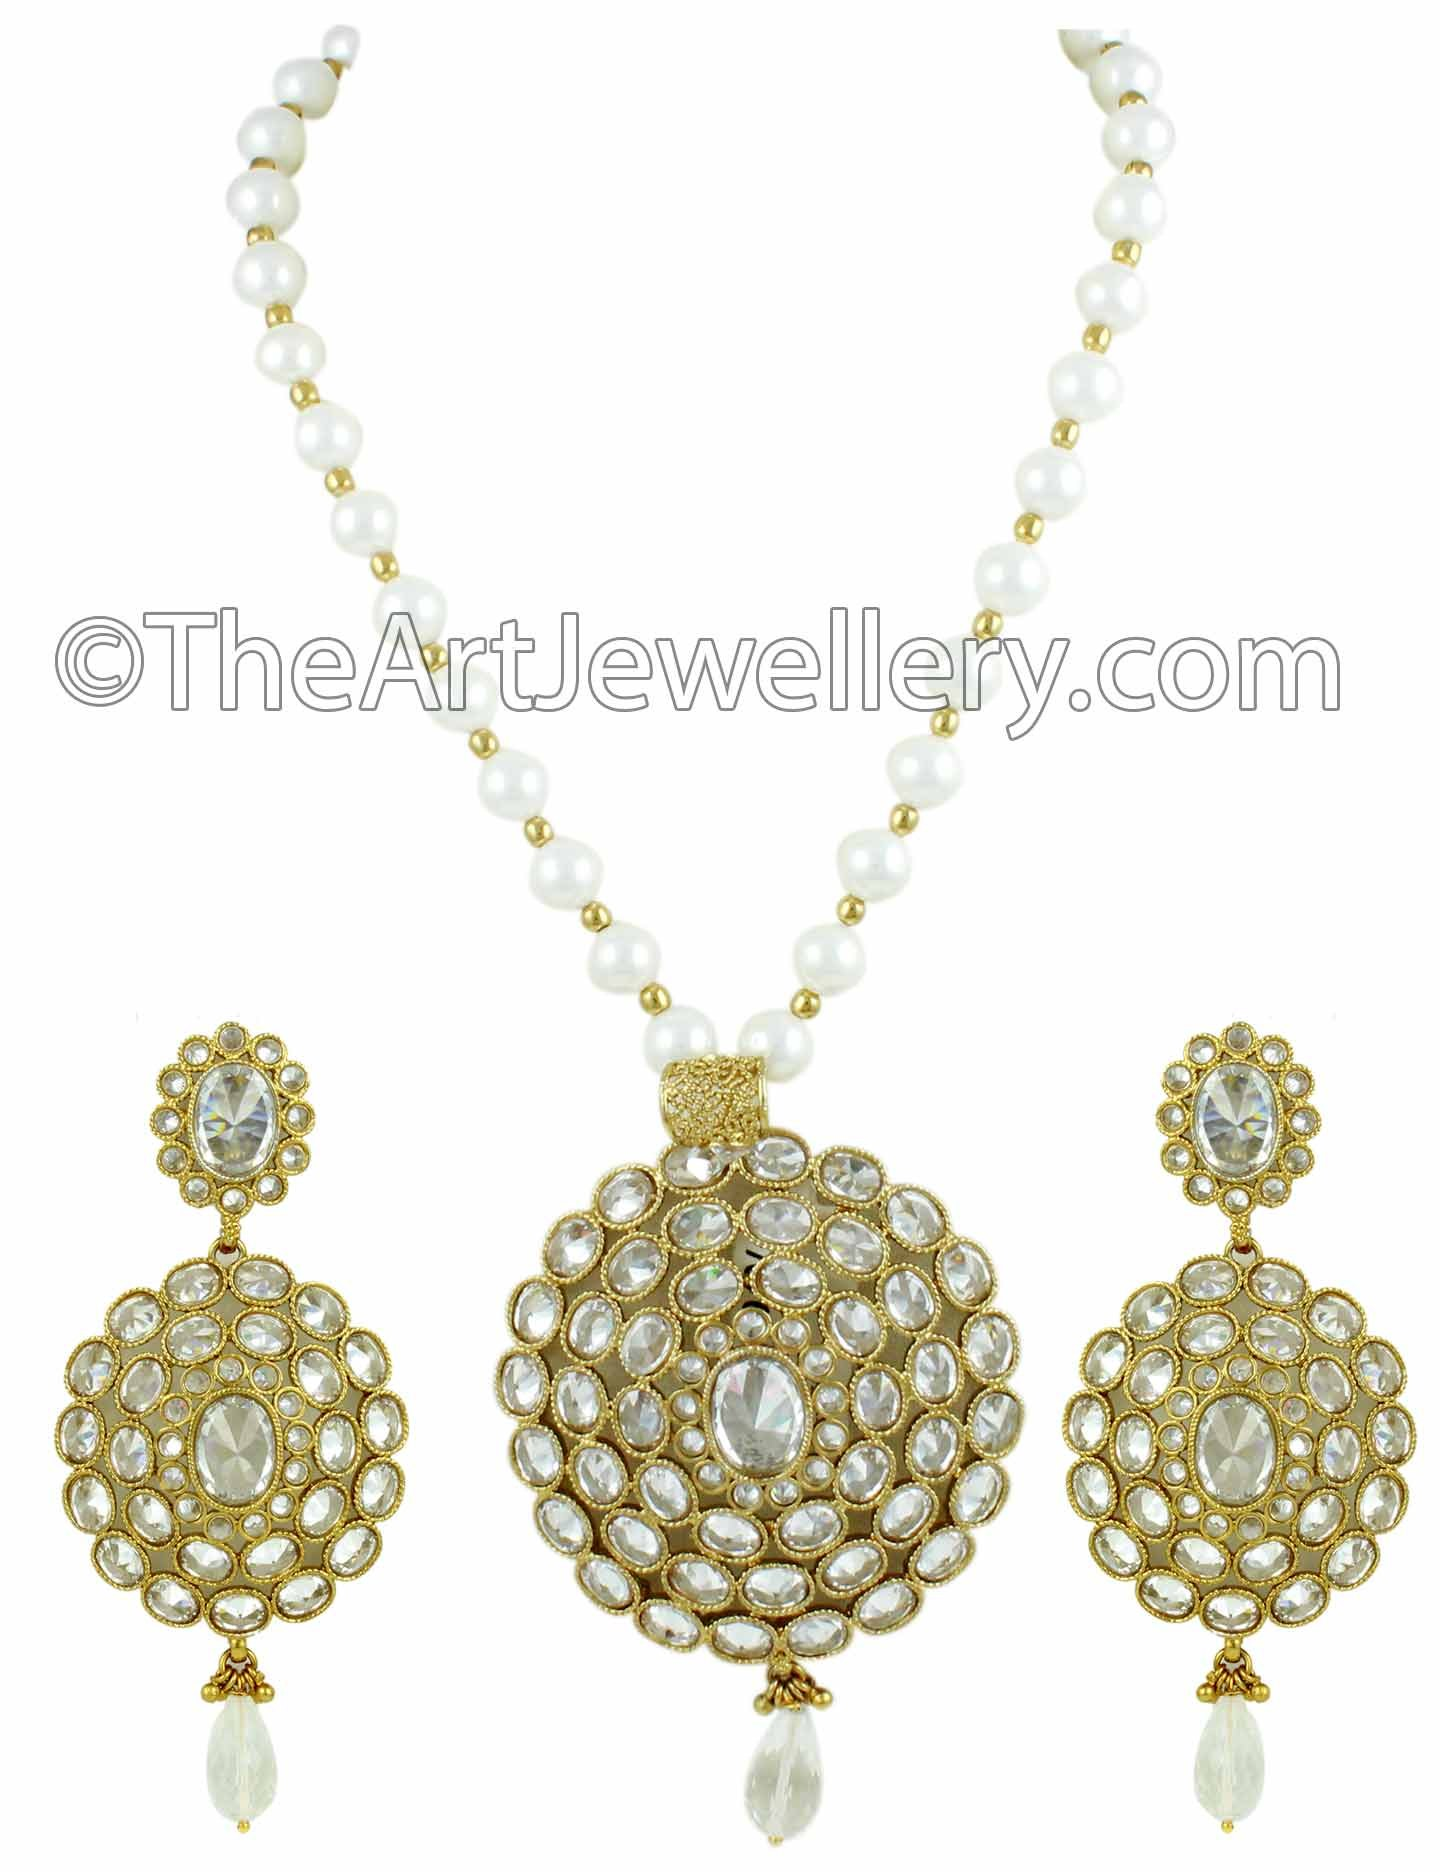 Reverse AD Pendant Set with Pearl Chain & Drops   Necklaces by The Art Jewellery available at Craftsvilla for Rs.4799